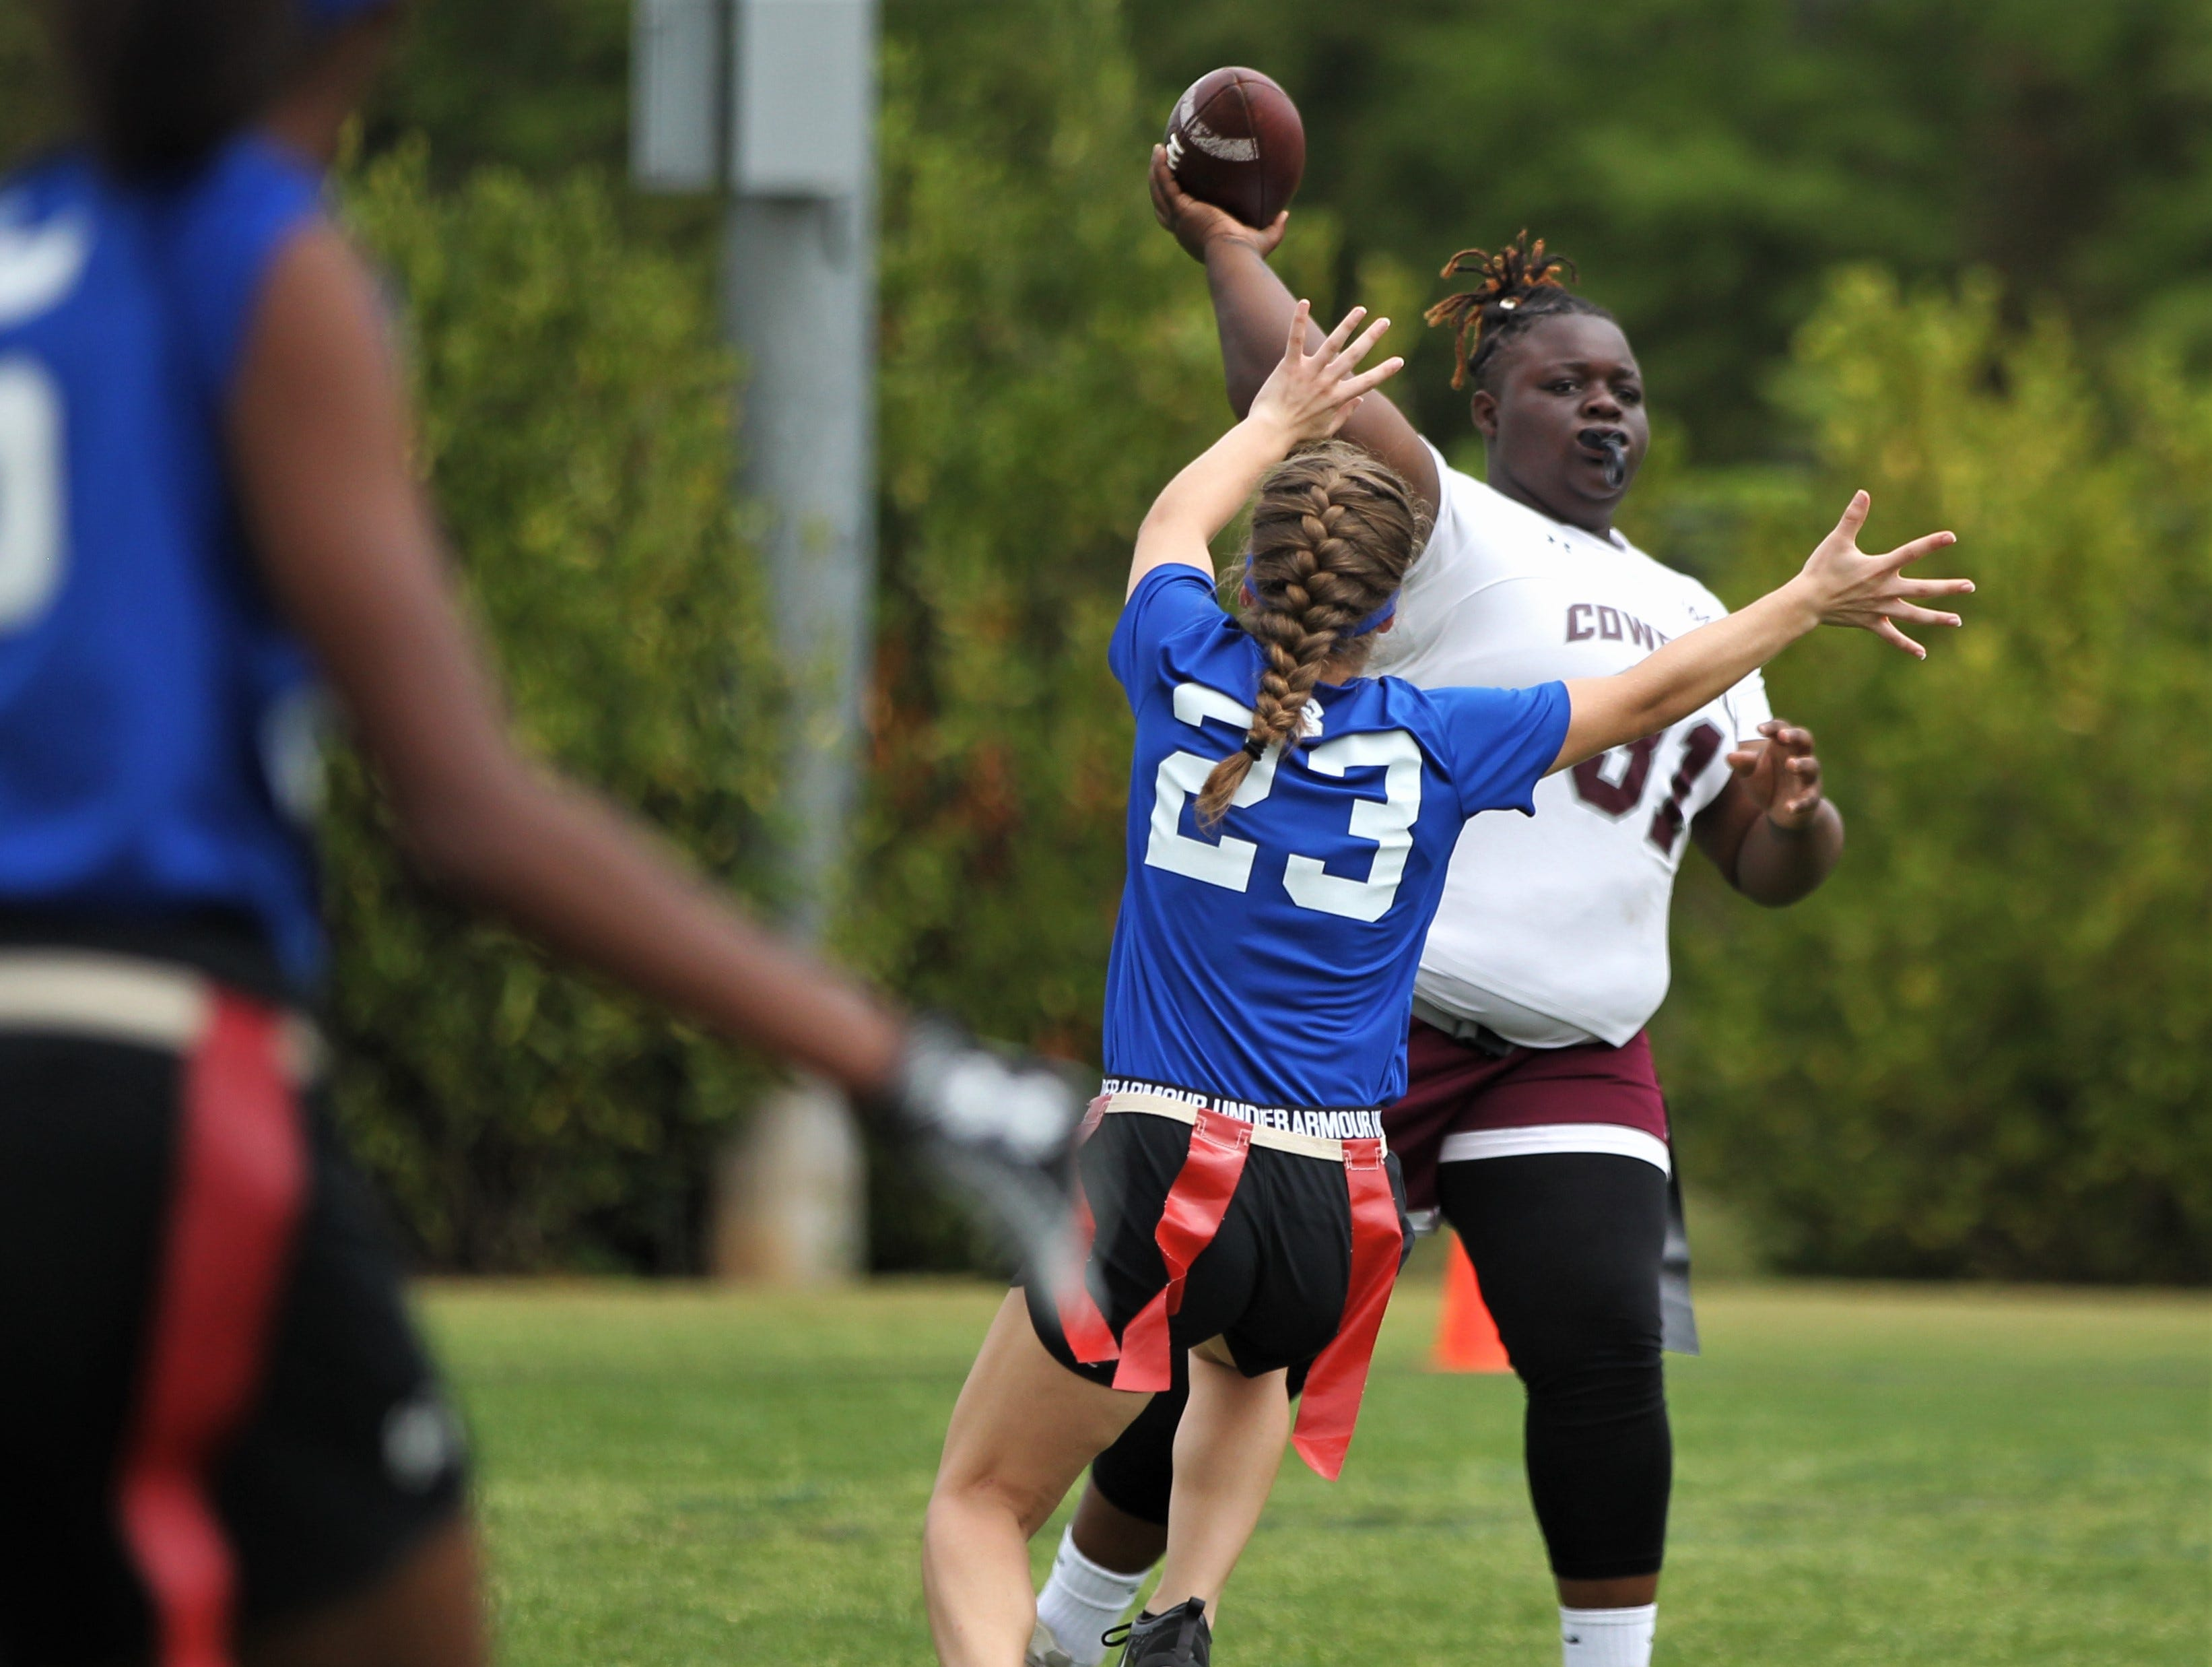 Madison County throws a pass against Belleview in the 2019 Capital City Classic at the FSU Rec SportsPlex on April 6, 2019.